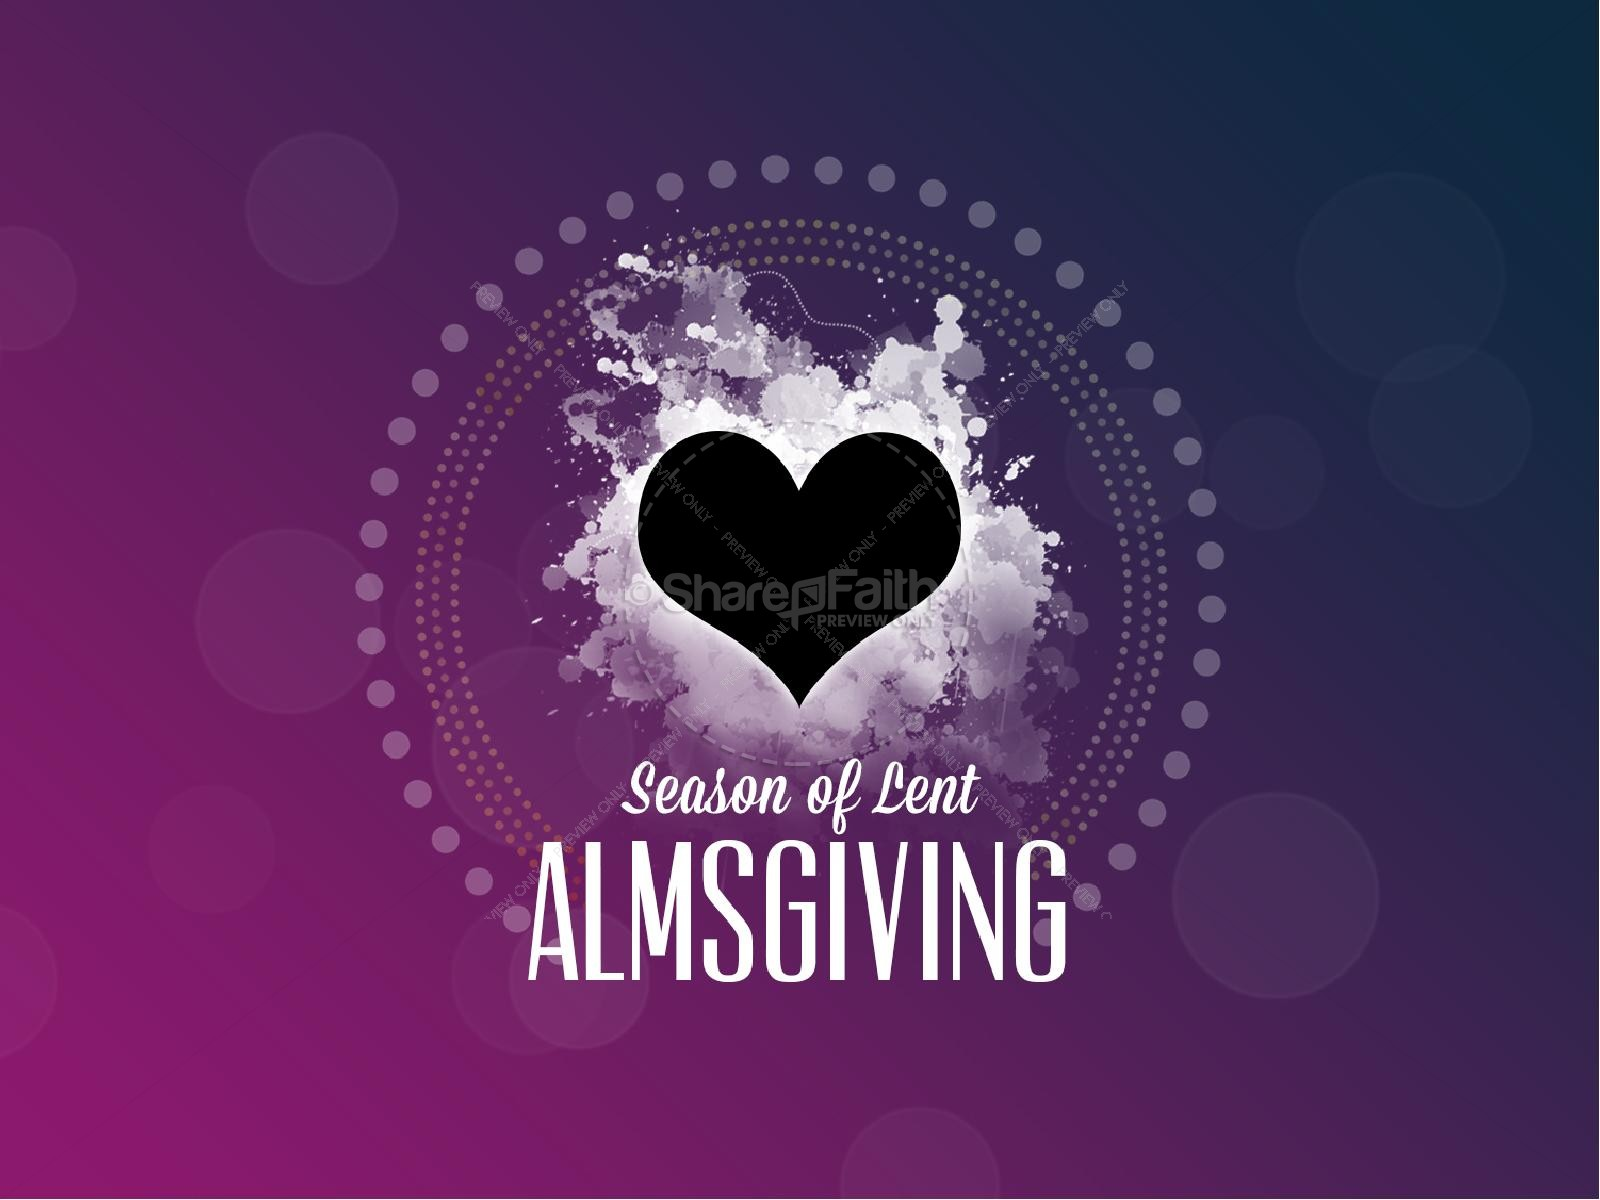 Season of Lent Almsgiving